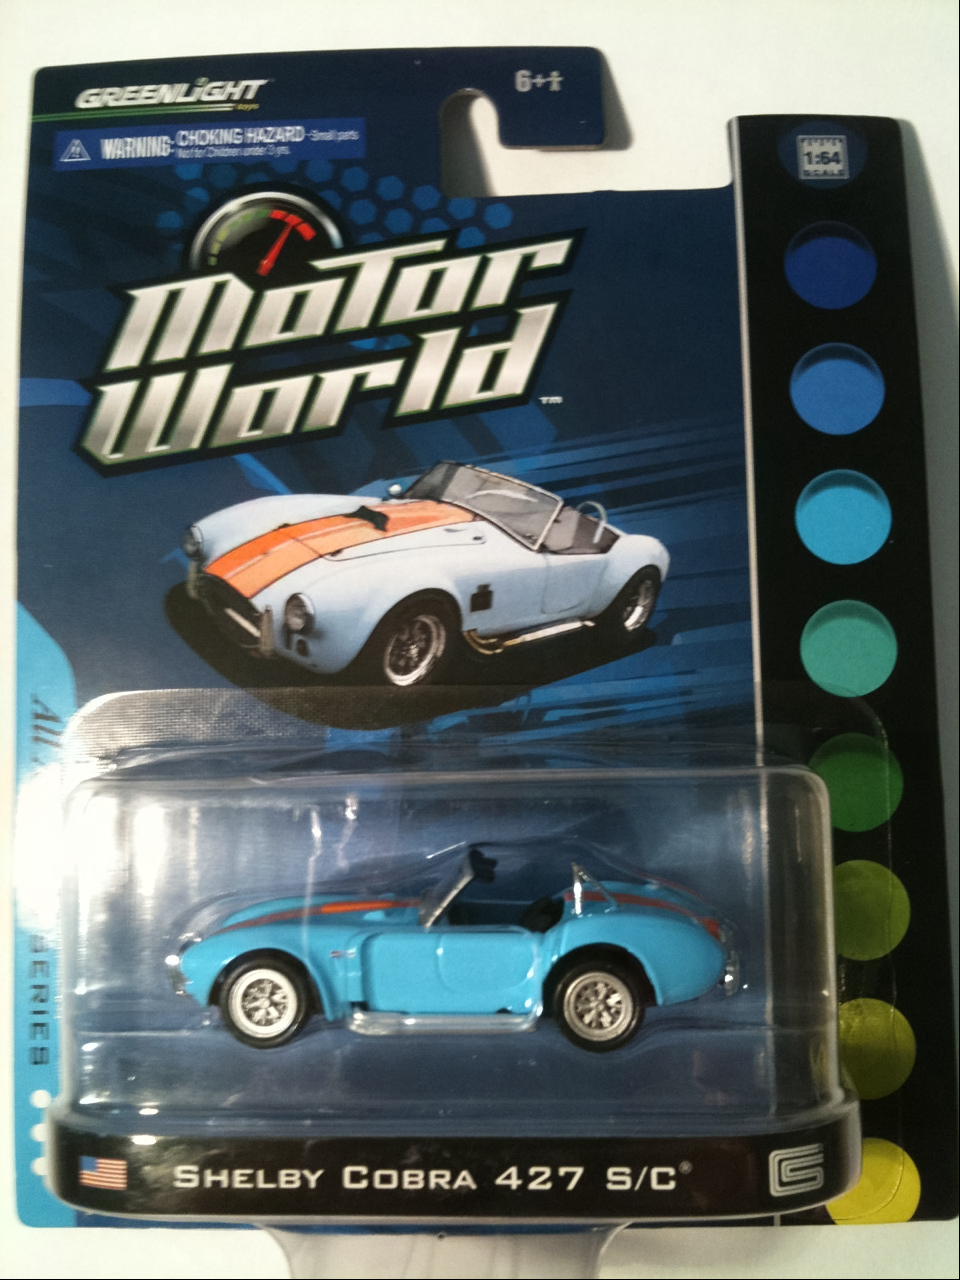 Greenlight Collectible Toy Diecast Cars Review Take Five